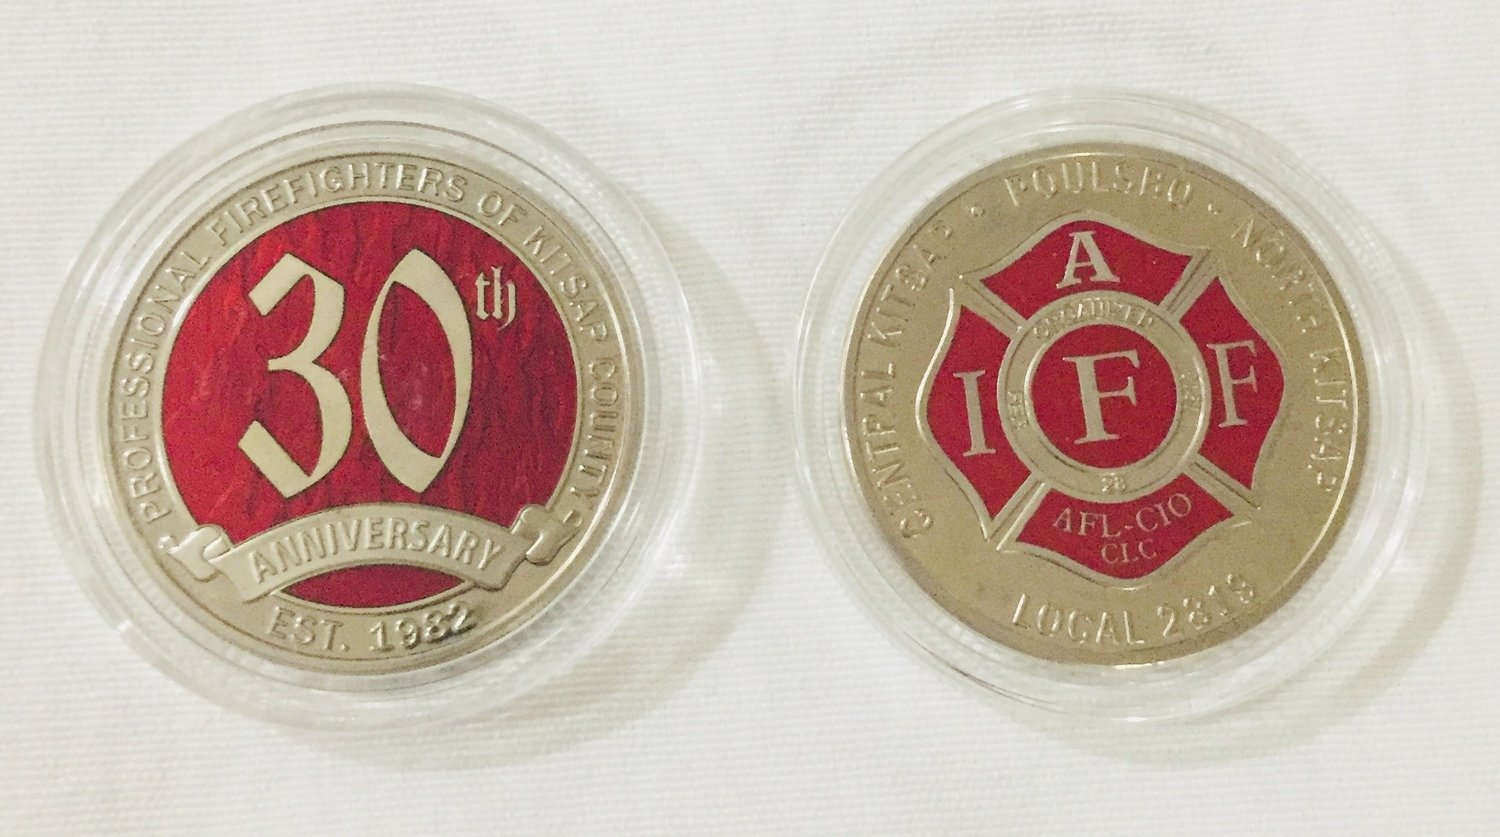 30th Anniversary Coin